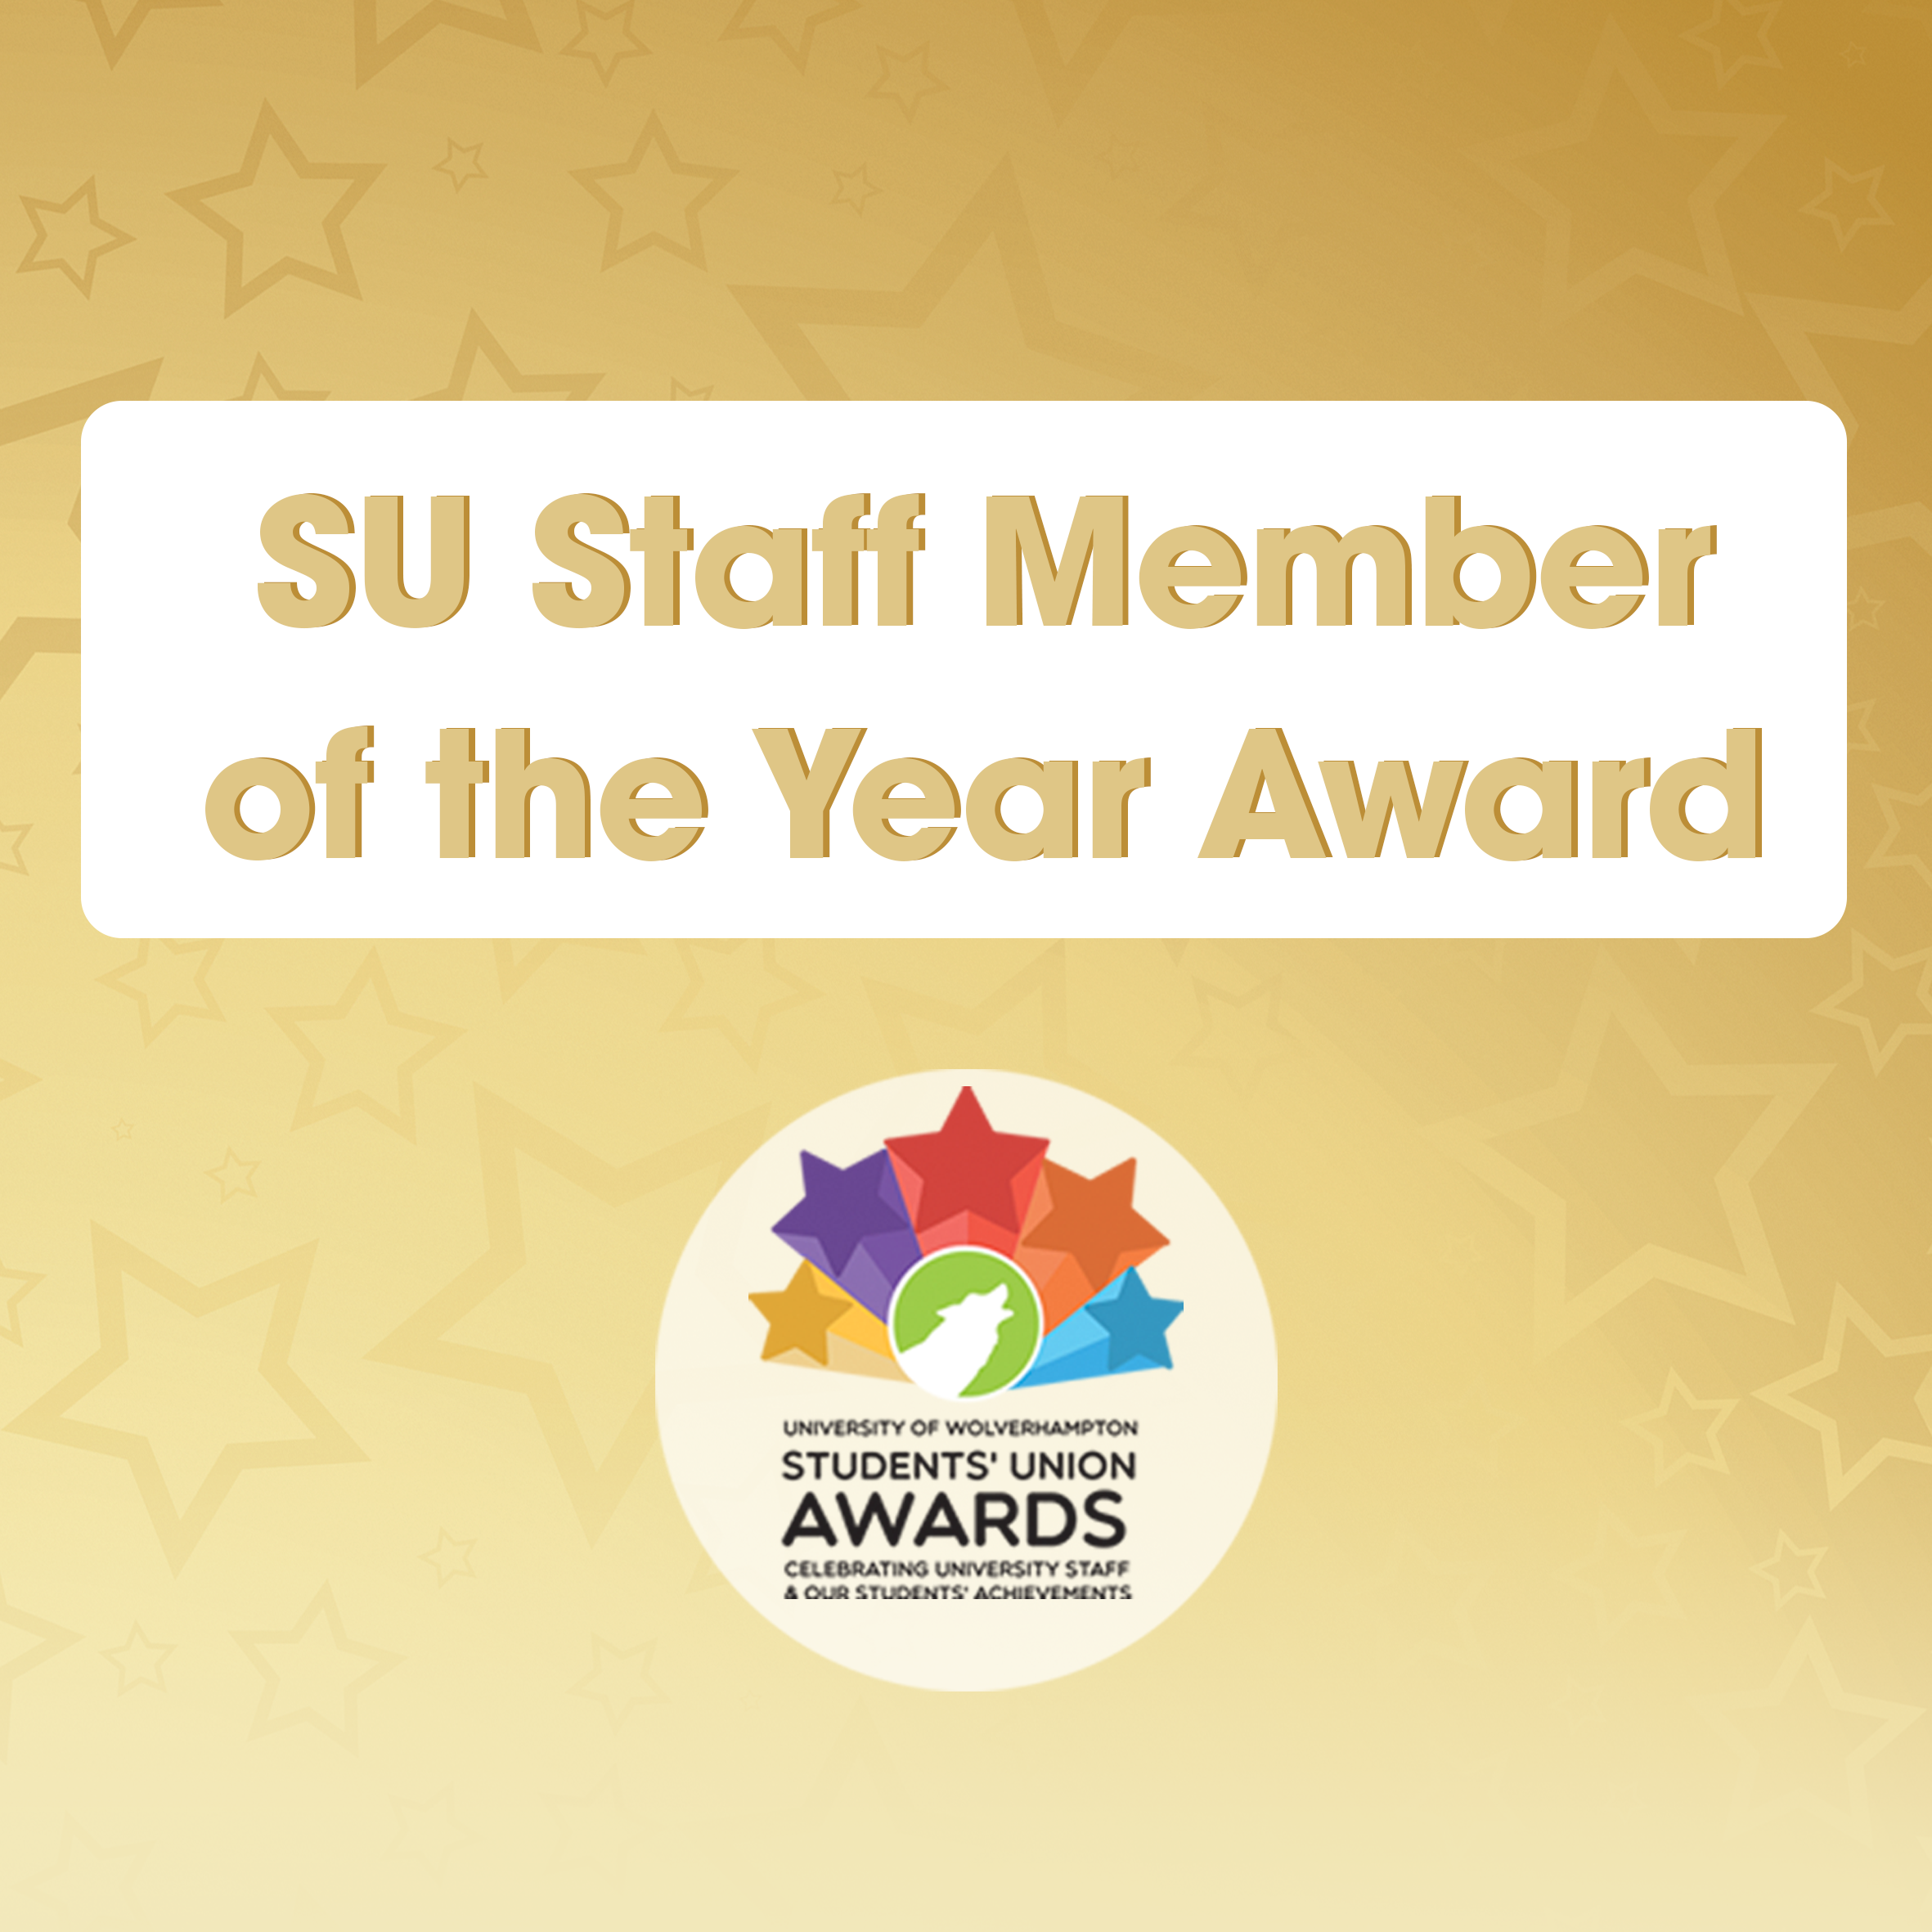 SU Staff Member of the Year